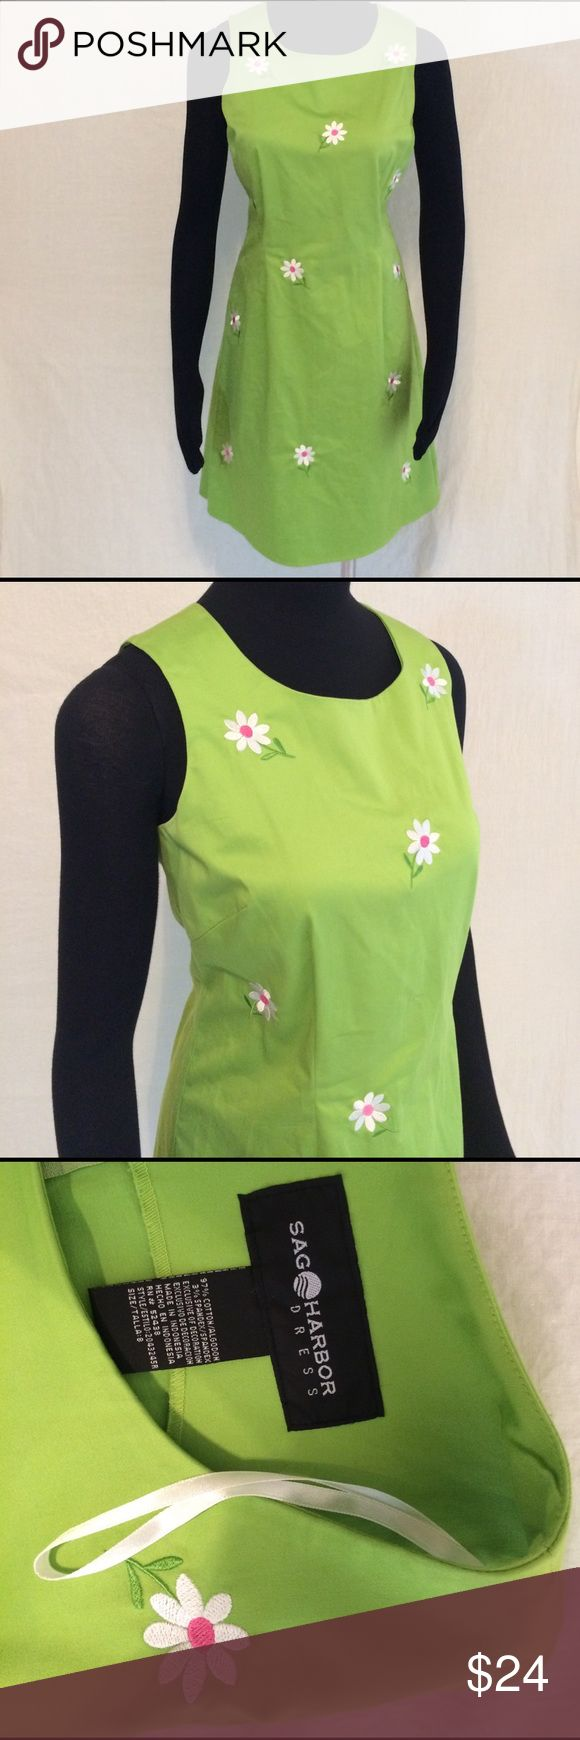 Sag Harbor Daisy Embroidered Summer Dress Size 8 Cute Sag Harbor Green summer dress with adorable embroidery daisies. Size 8. Sag Harbor Dresses Midi